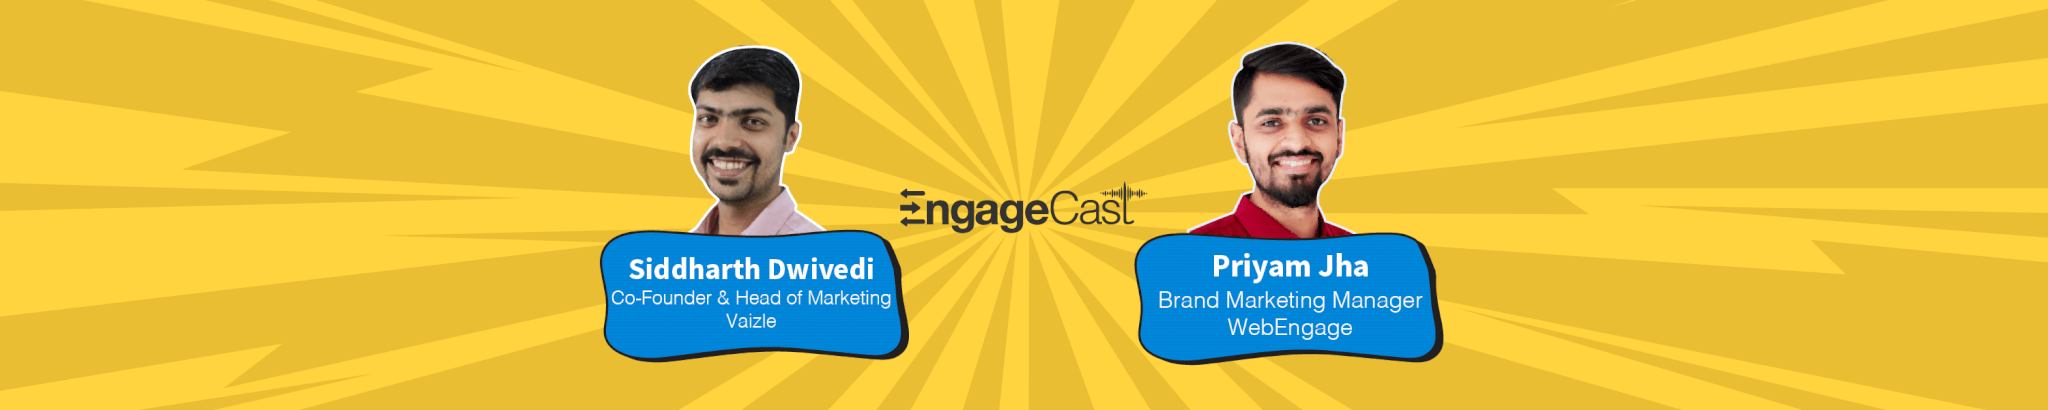 Episode 13: Rewriting the Marketing Playbook for 2020 & Beyond | Siddharth Dwivedi